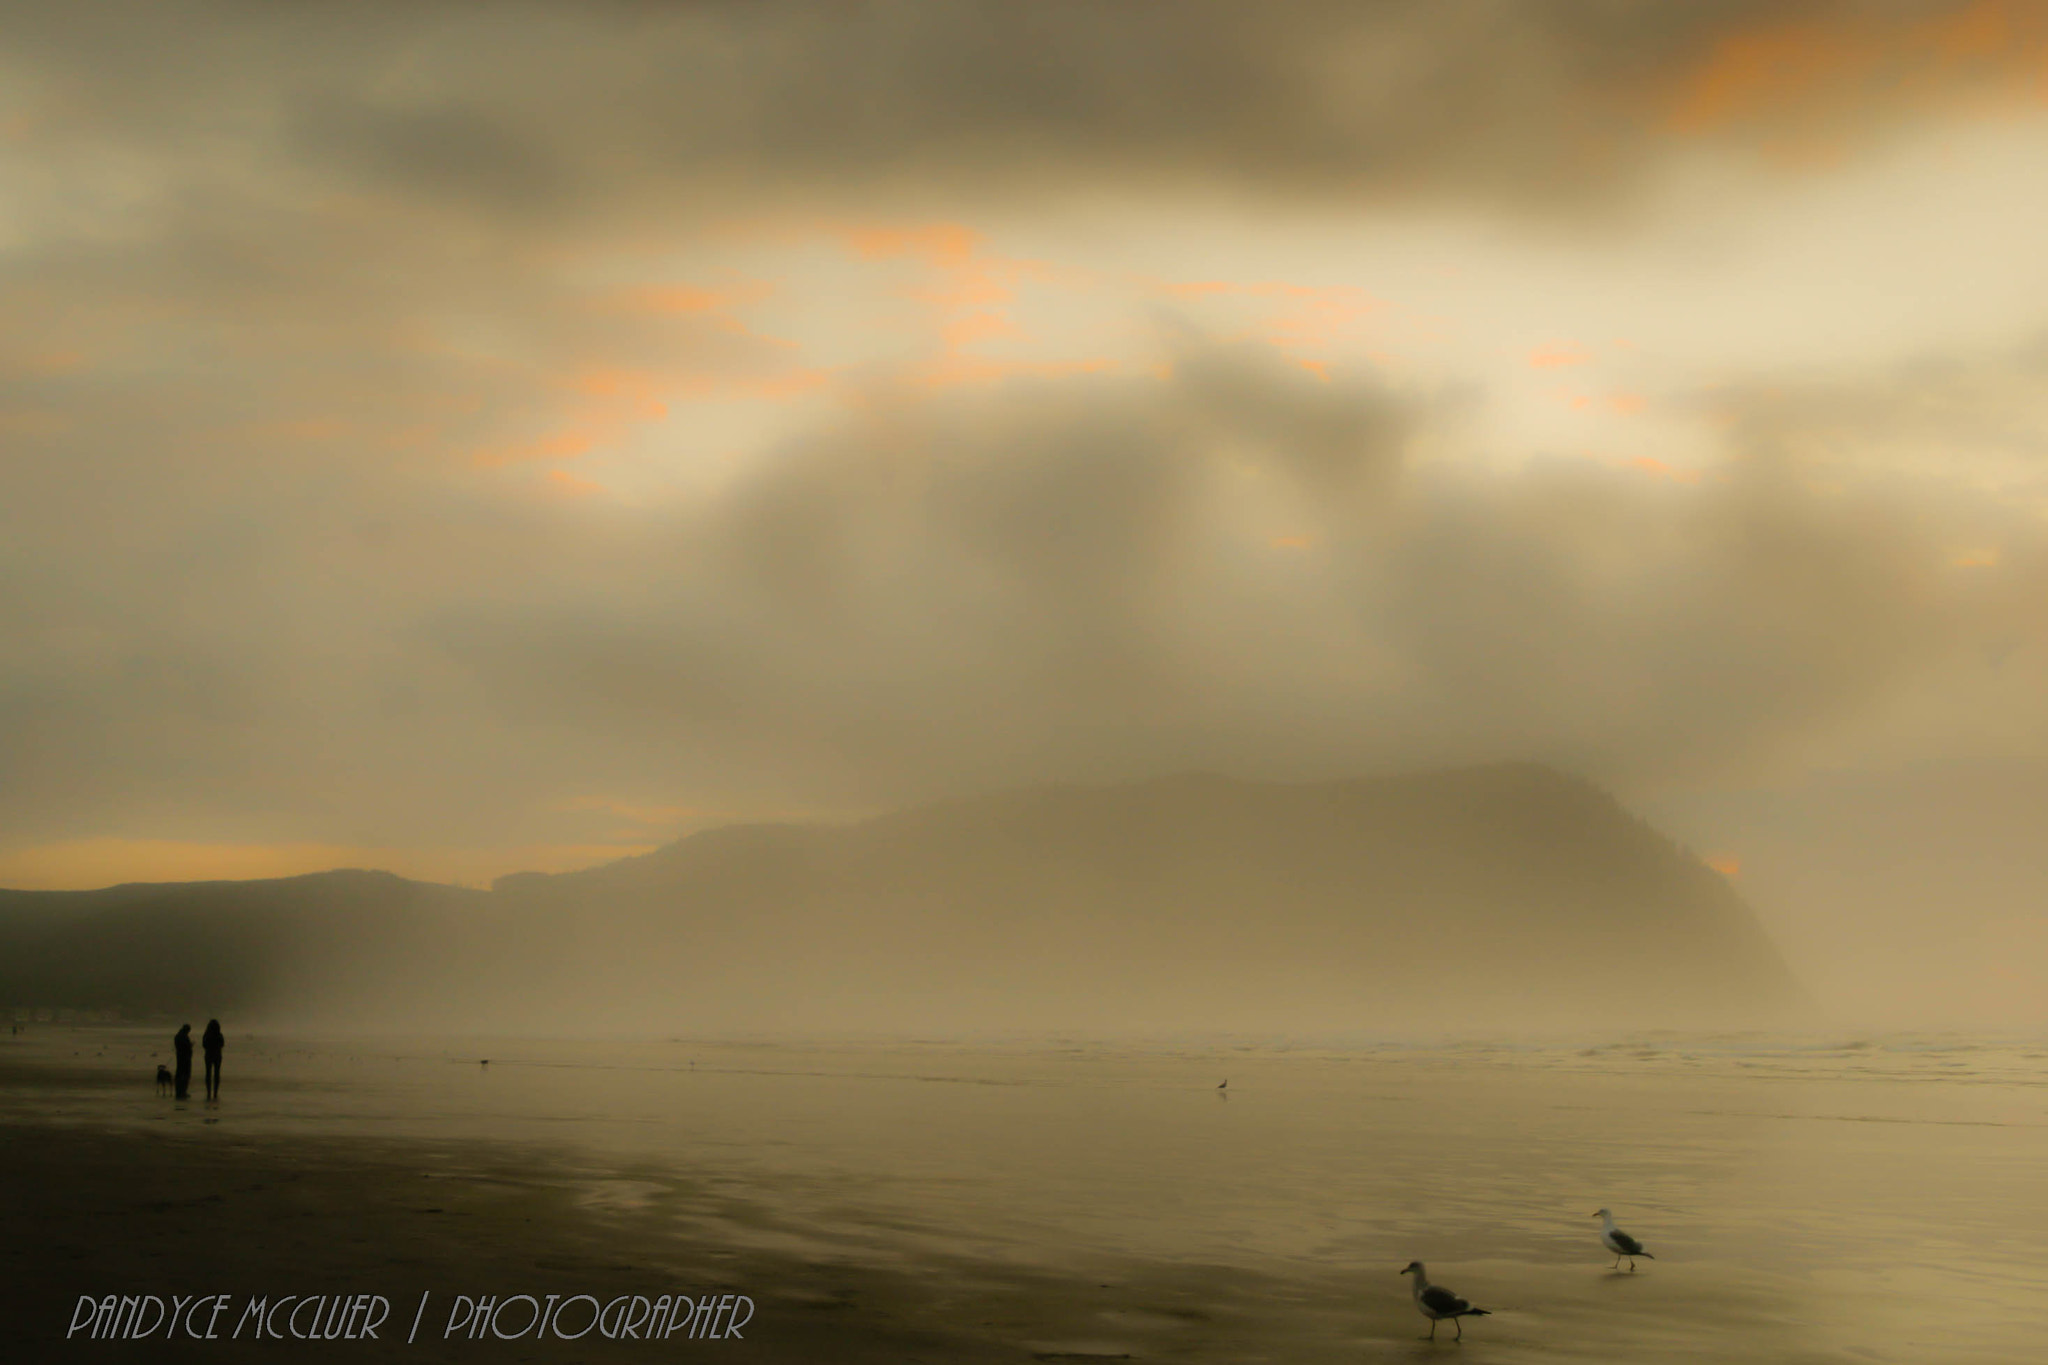 Photograph Foggy Beach Strollers by Pandyce McCluer on 500px